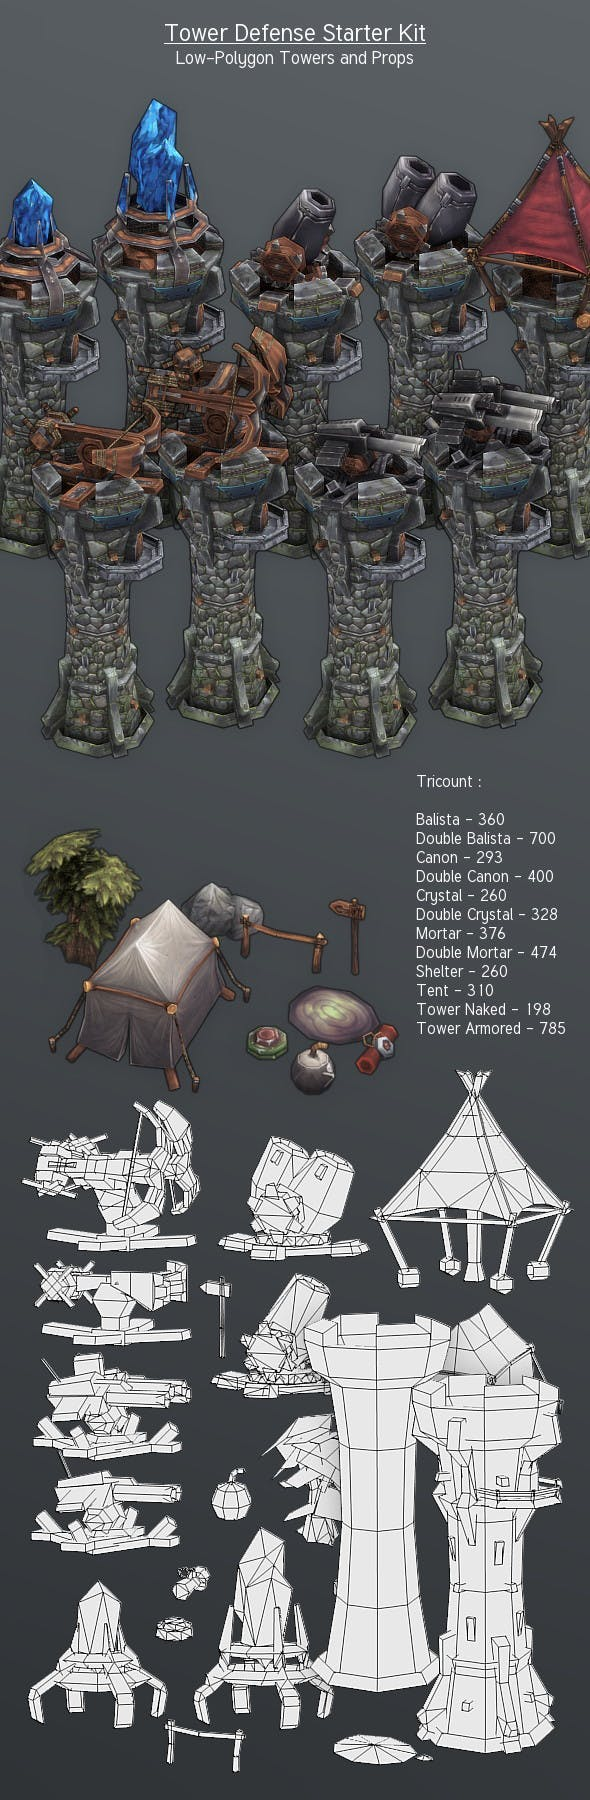 LowPoly Tower Defense Starter Kit - 3DOcean Item for Sale